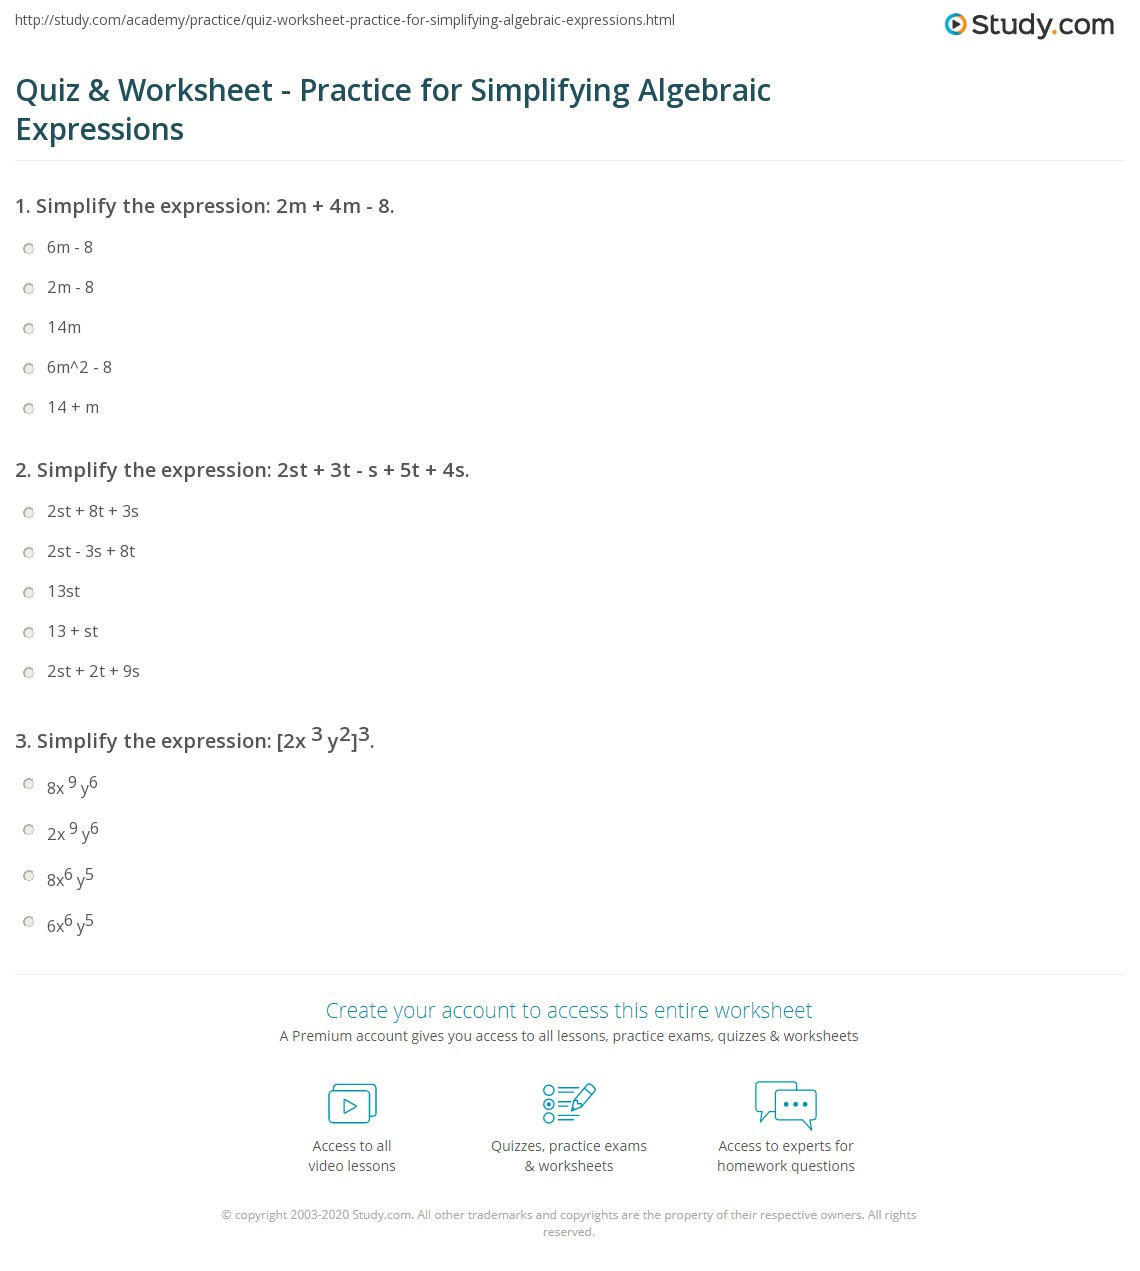 Quiz worksheet practice for simplifying algebraic expressions print practice simplifying algebraic expressions worksheet ibookread Download